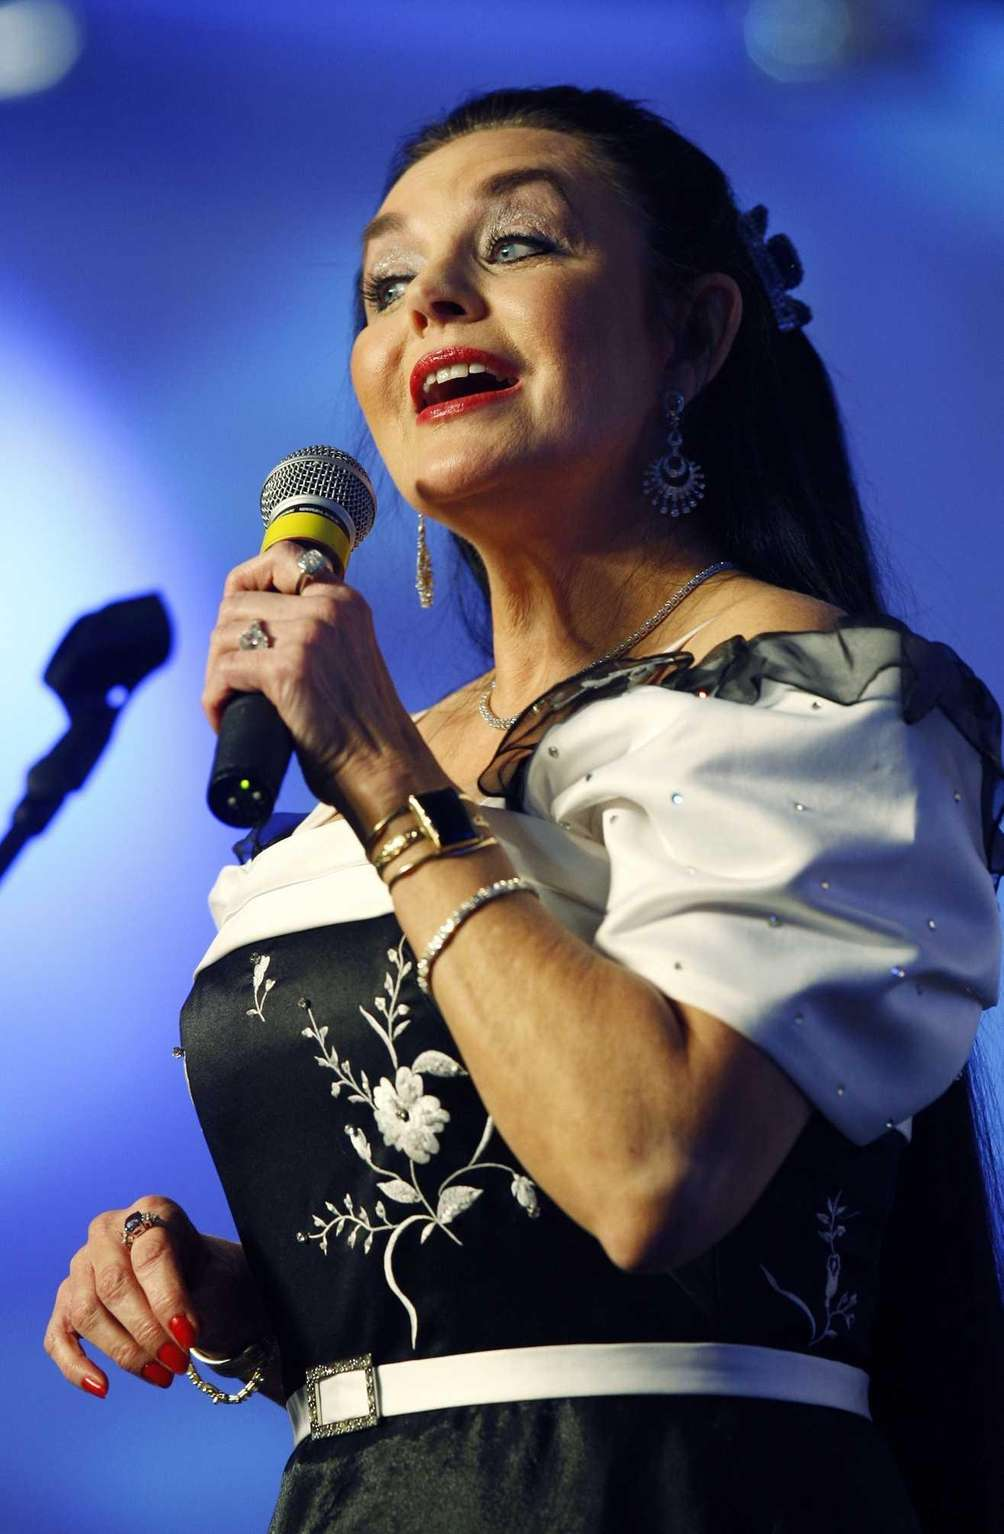 Crystal Gayle, known for her 1977 hit